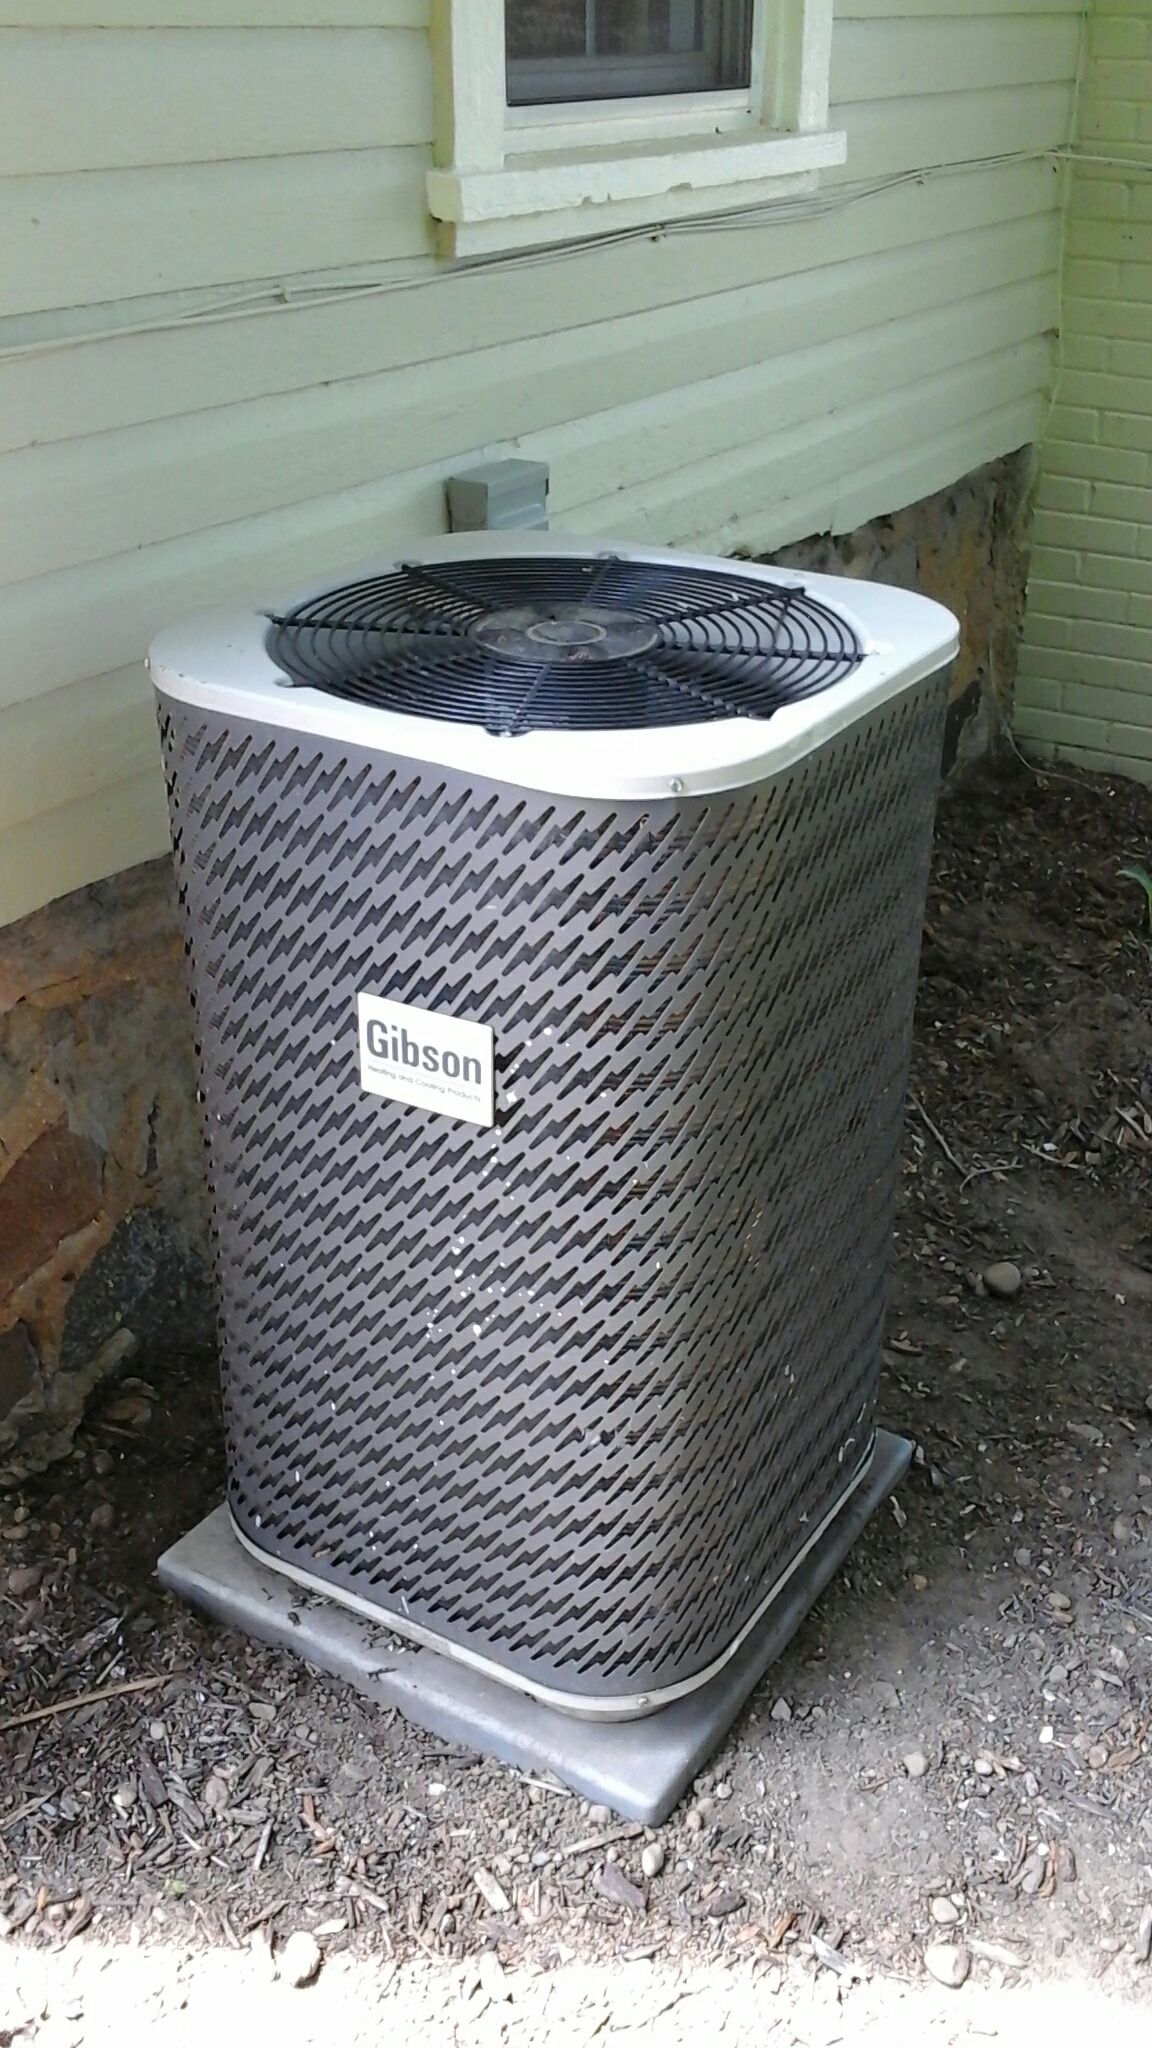 Concord, MI - Performed a precision tune-up on a Gibson air conditioning unit with R - 22 refrigerant.